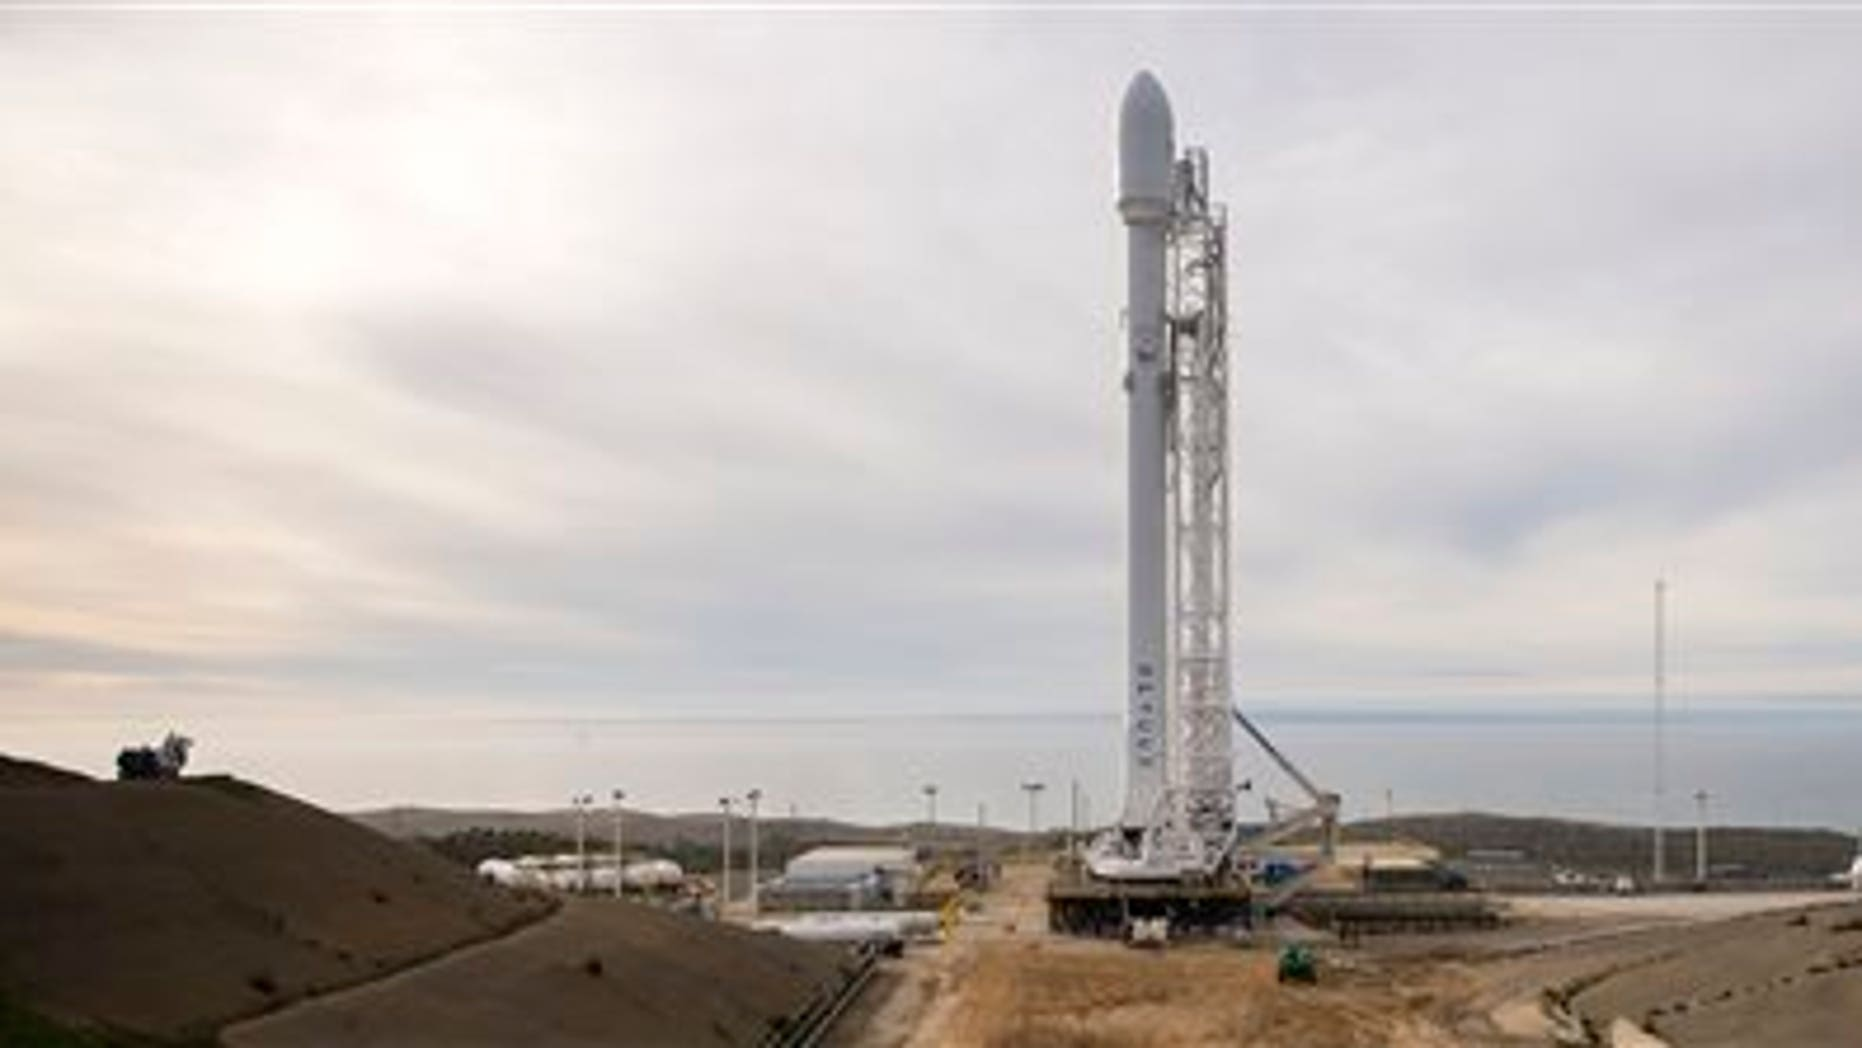 The SpaceX Falcon 9 rocket is seen at Vandenberg Air Force Base Space Launch Complex 4 East with the Jason-3 spacecraft onboard, Saturday, Jan. 16, 2016, in California.  (Bill Ingalls/NASA via AP)